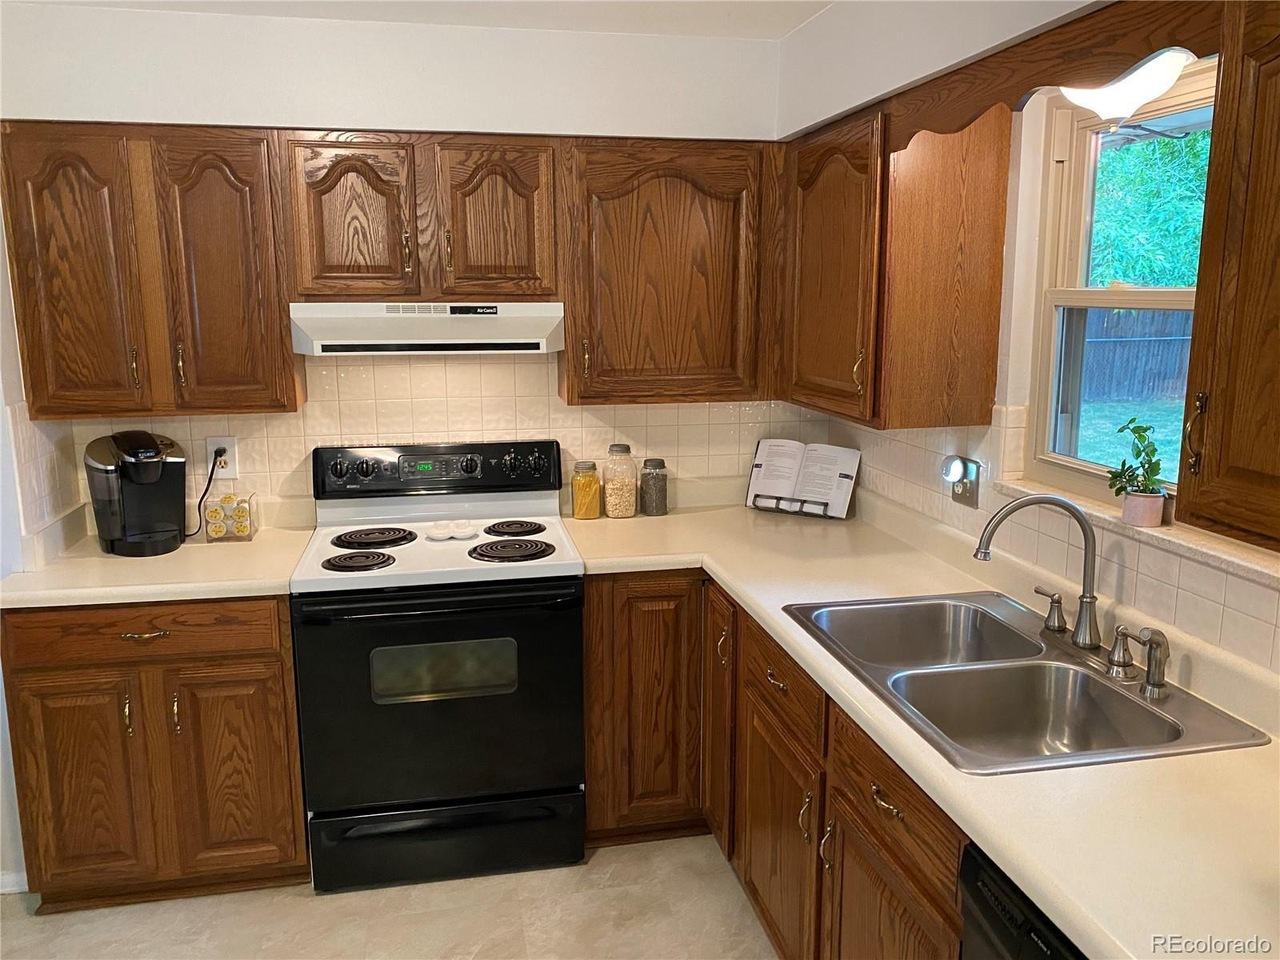 BEFORE The oak cabinets made this kitchen look very dated.